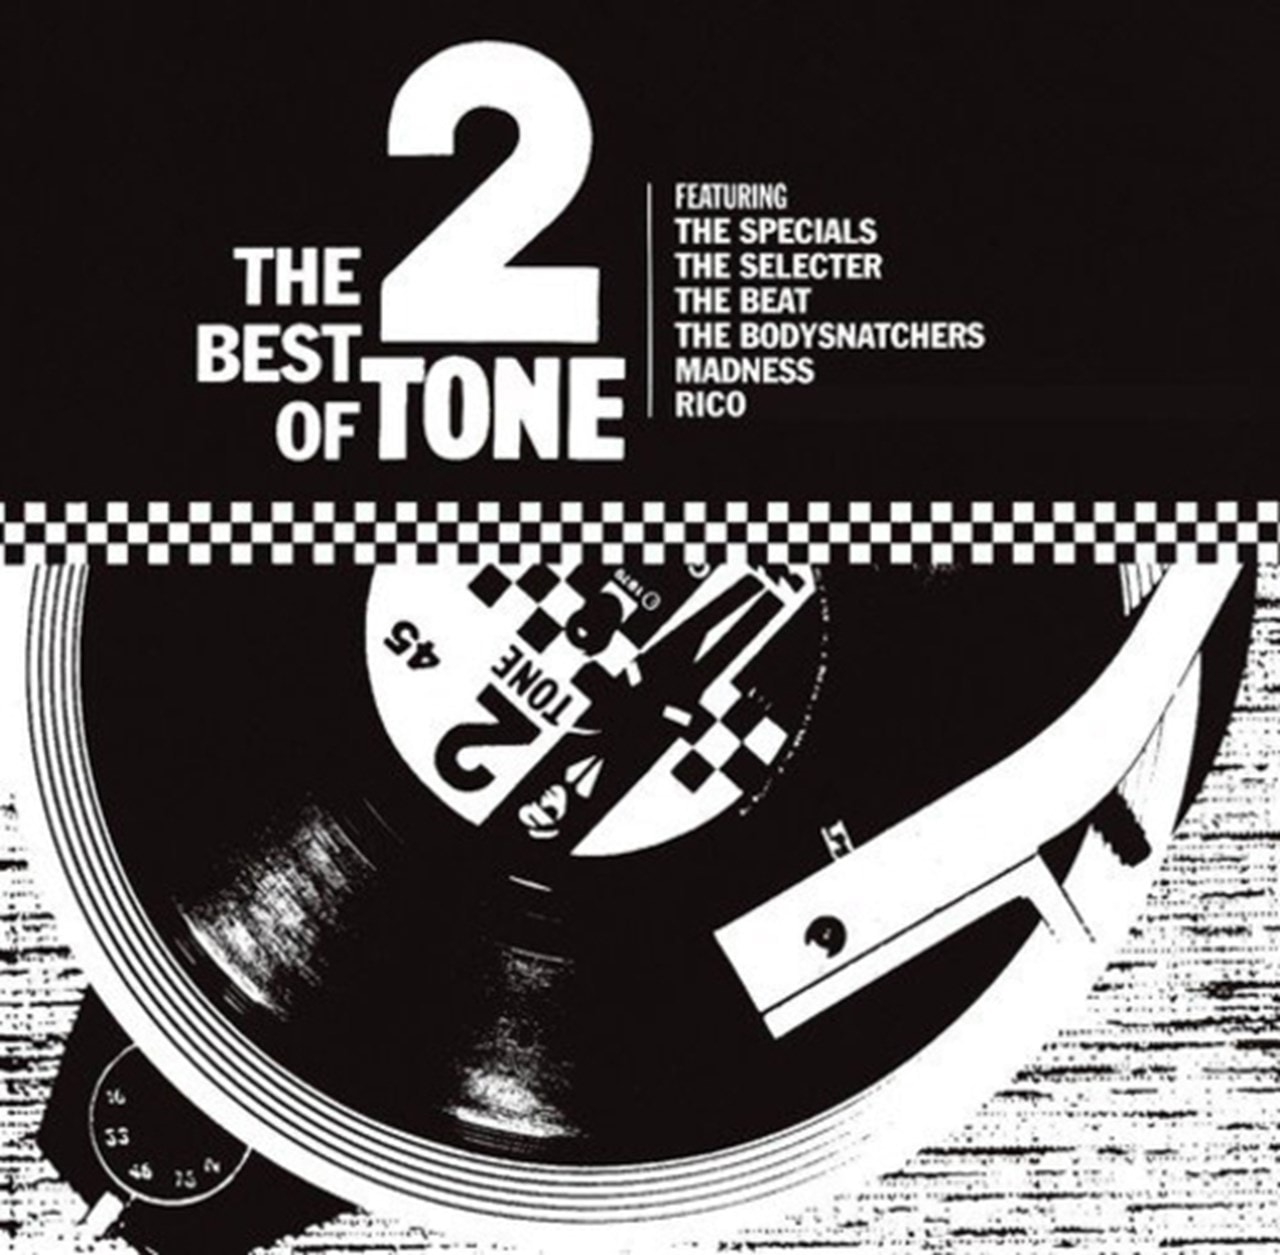 The Best of 2 Tone - 1